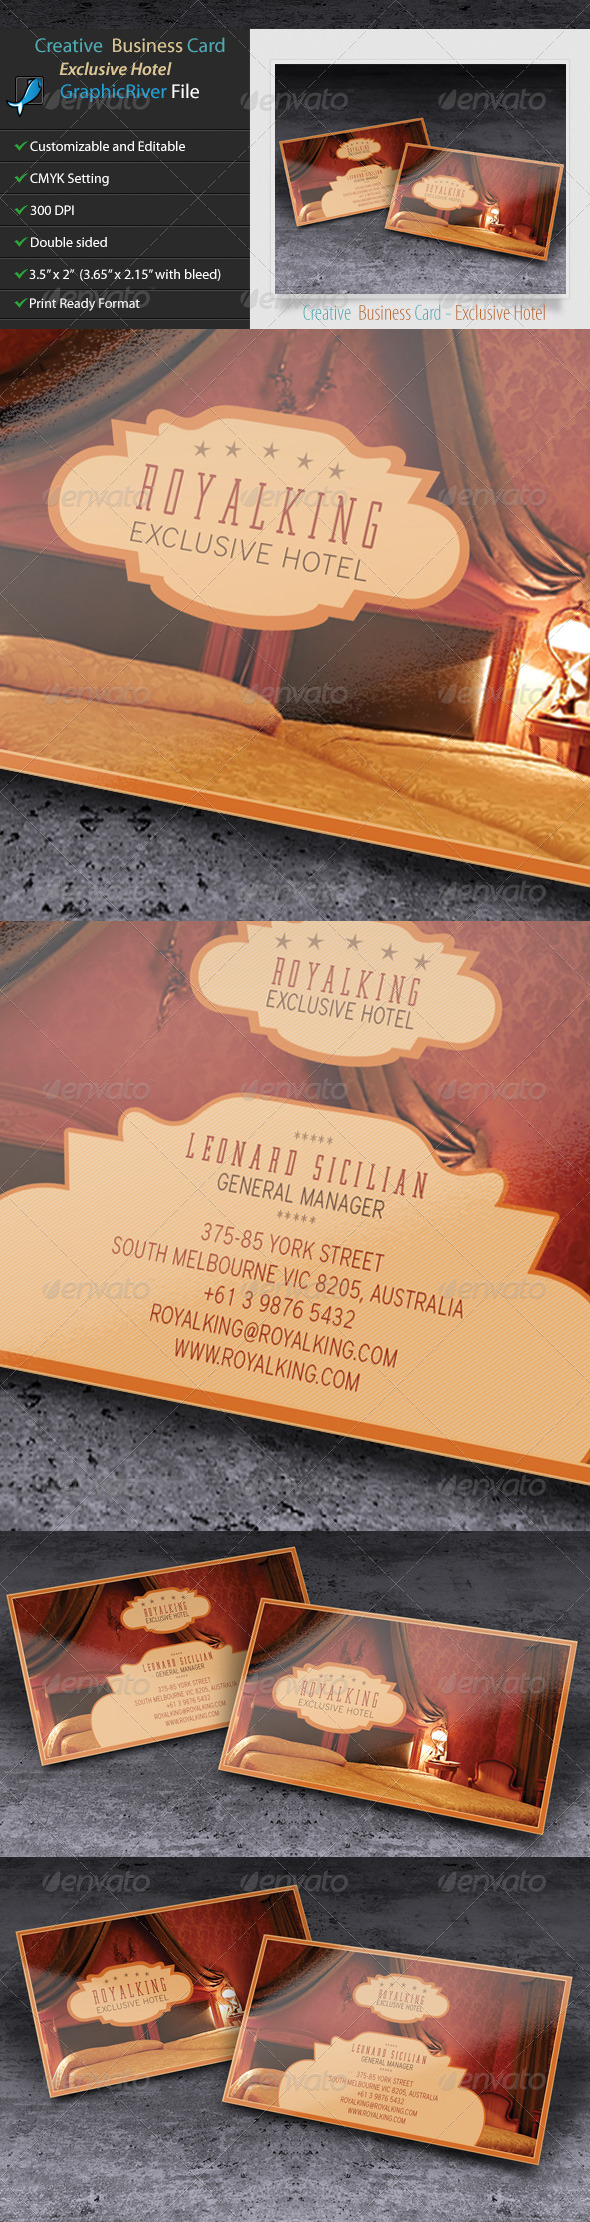 Creative business card Exclusive Hotel